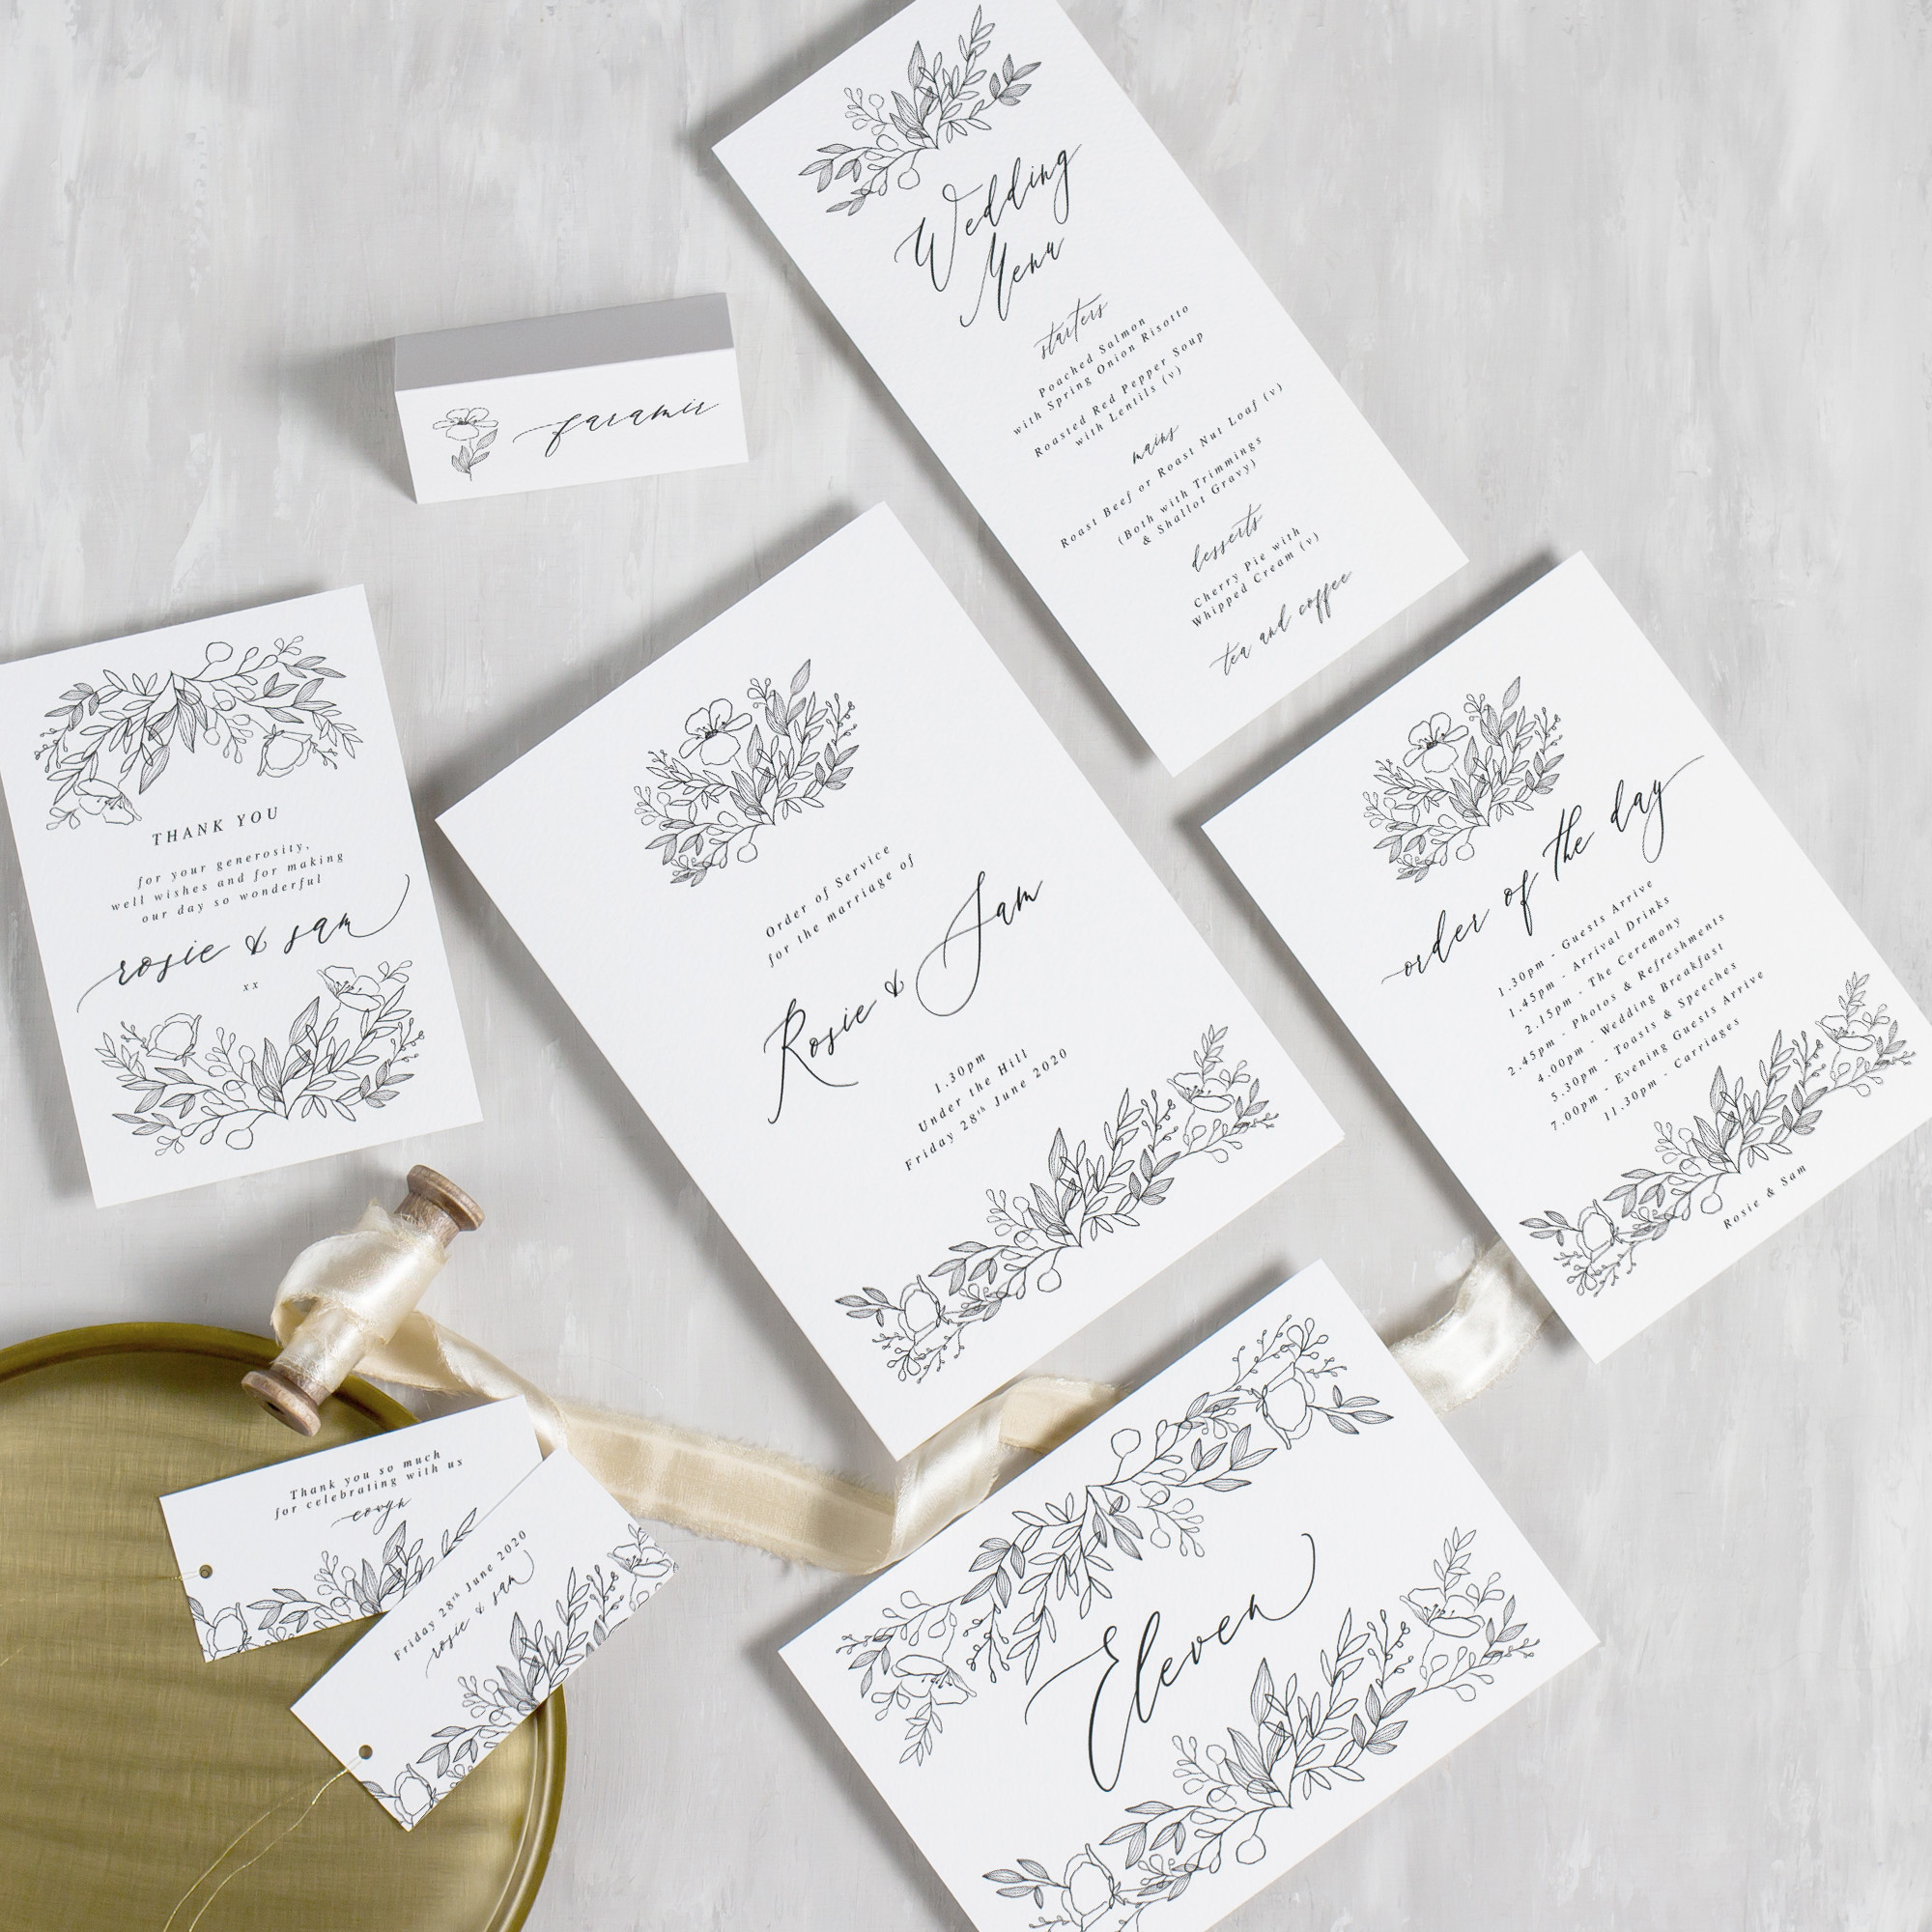 Luxury-Wedding-Stationery-Unique-Illustrated-Floral-Botanical-Leaves-Flowers-Spring-Summer-Wedding-On-The-Day-Stationery-Compilation-Goldberry-Pingle-Pie.jpg.jpg